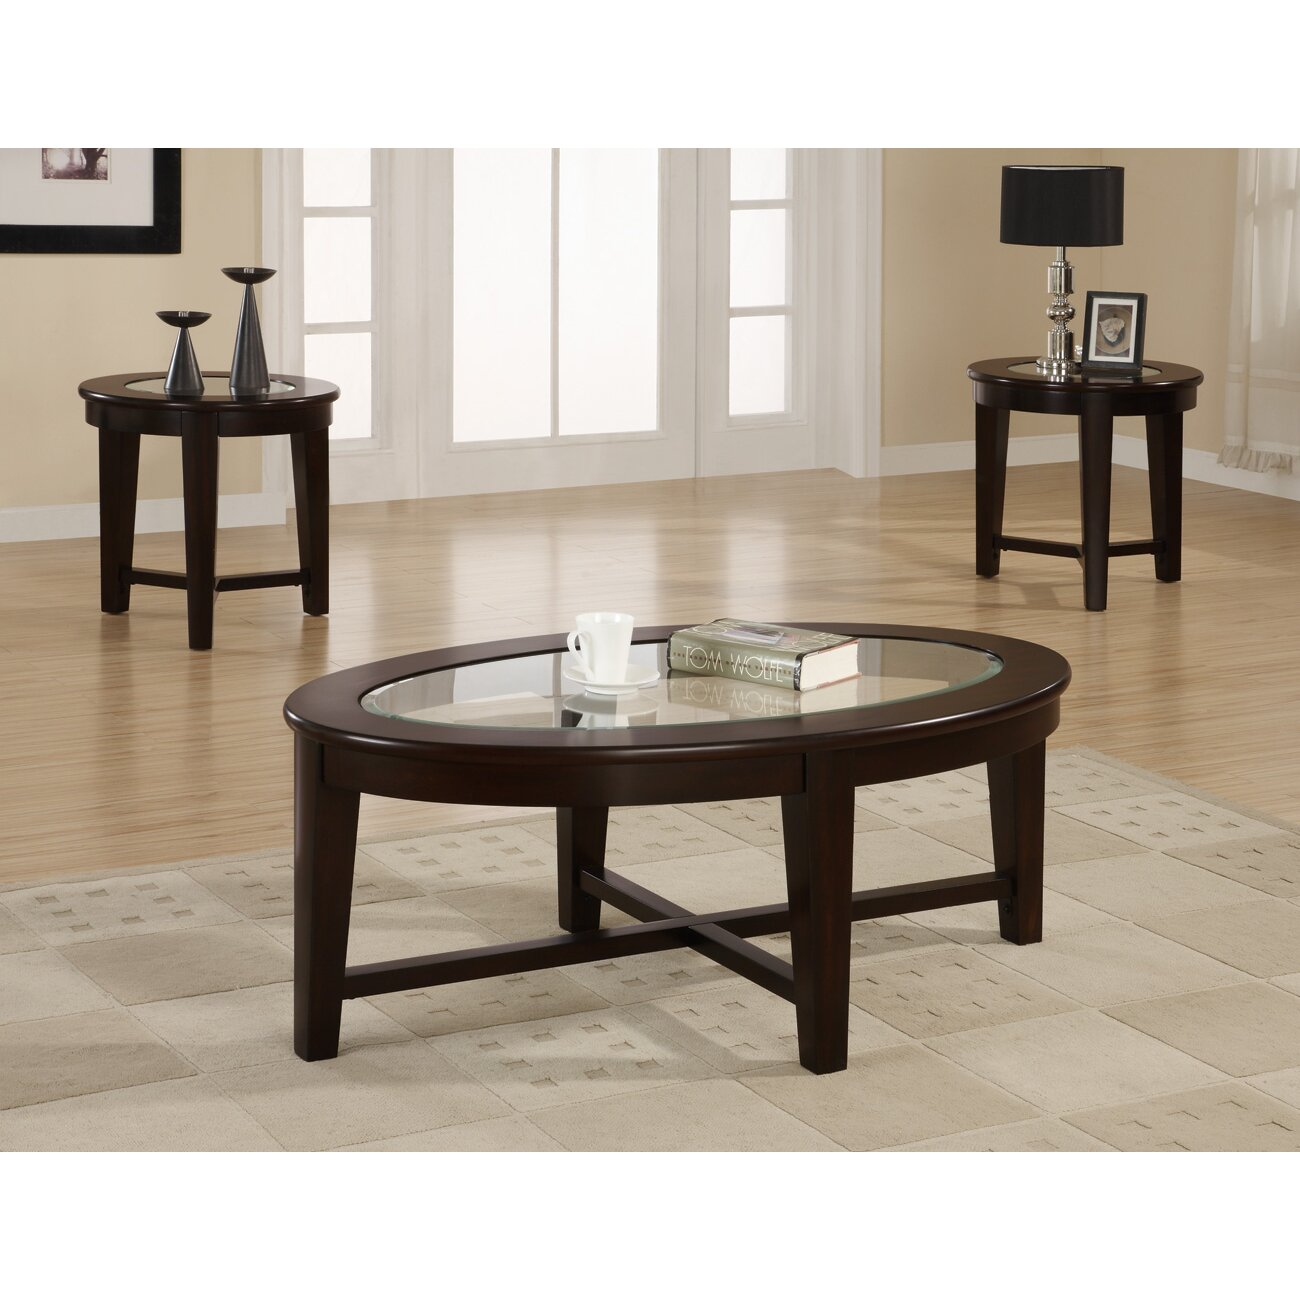 Amalga 3 Piece Coffee Table Set - Wildon Home ® Amalga 3 Piece Coffee Table Set & Reviews Wayfair